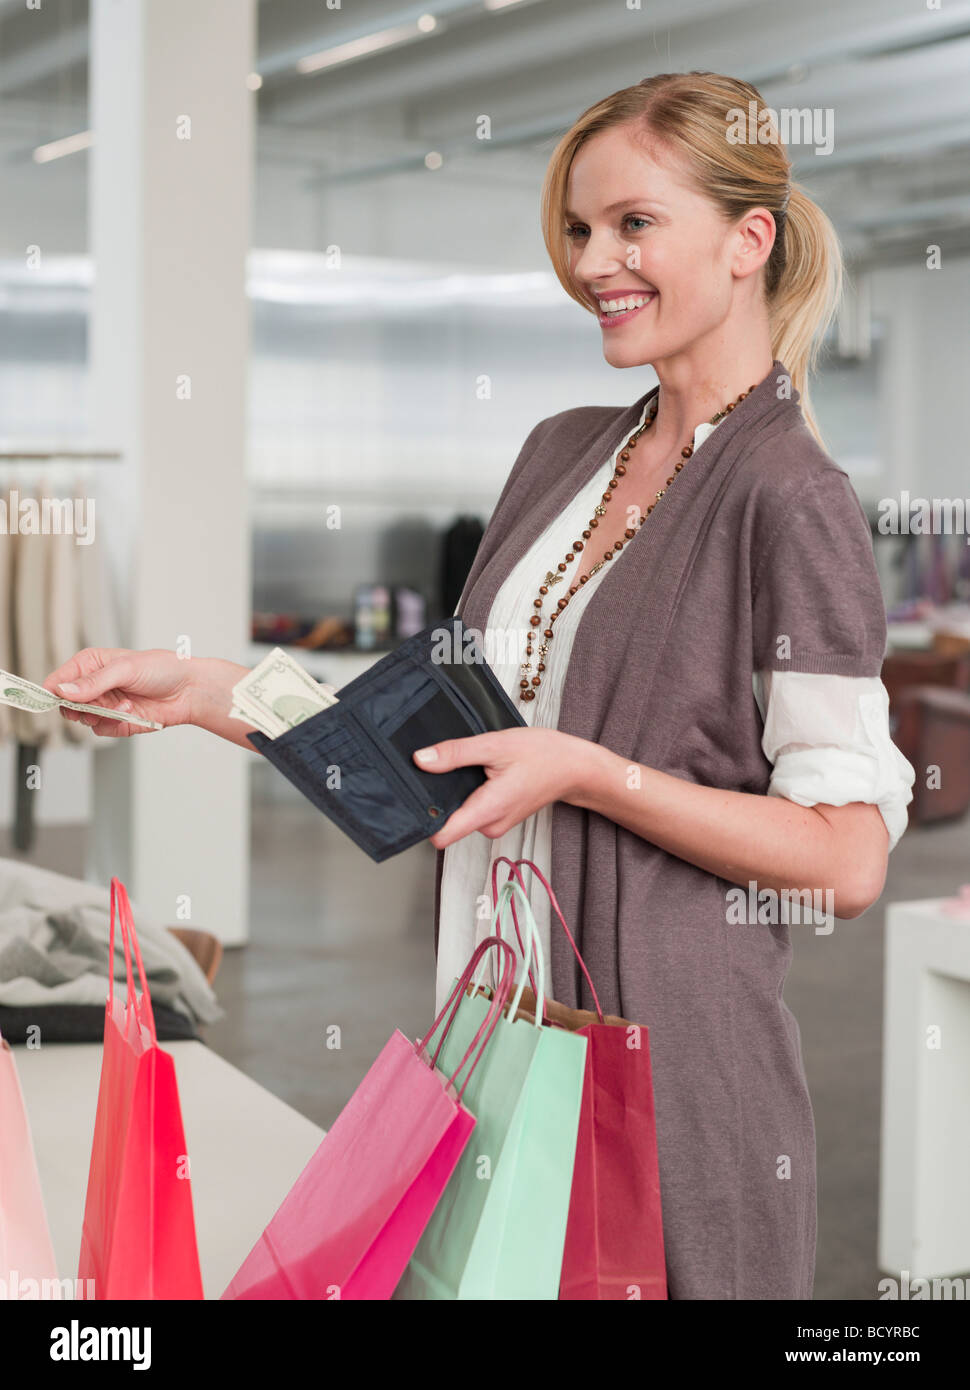 woman paying for her shopping items - Stock Image